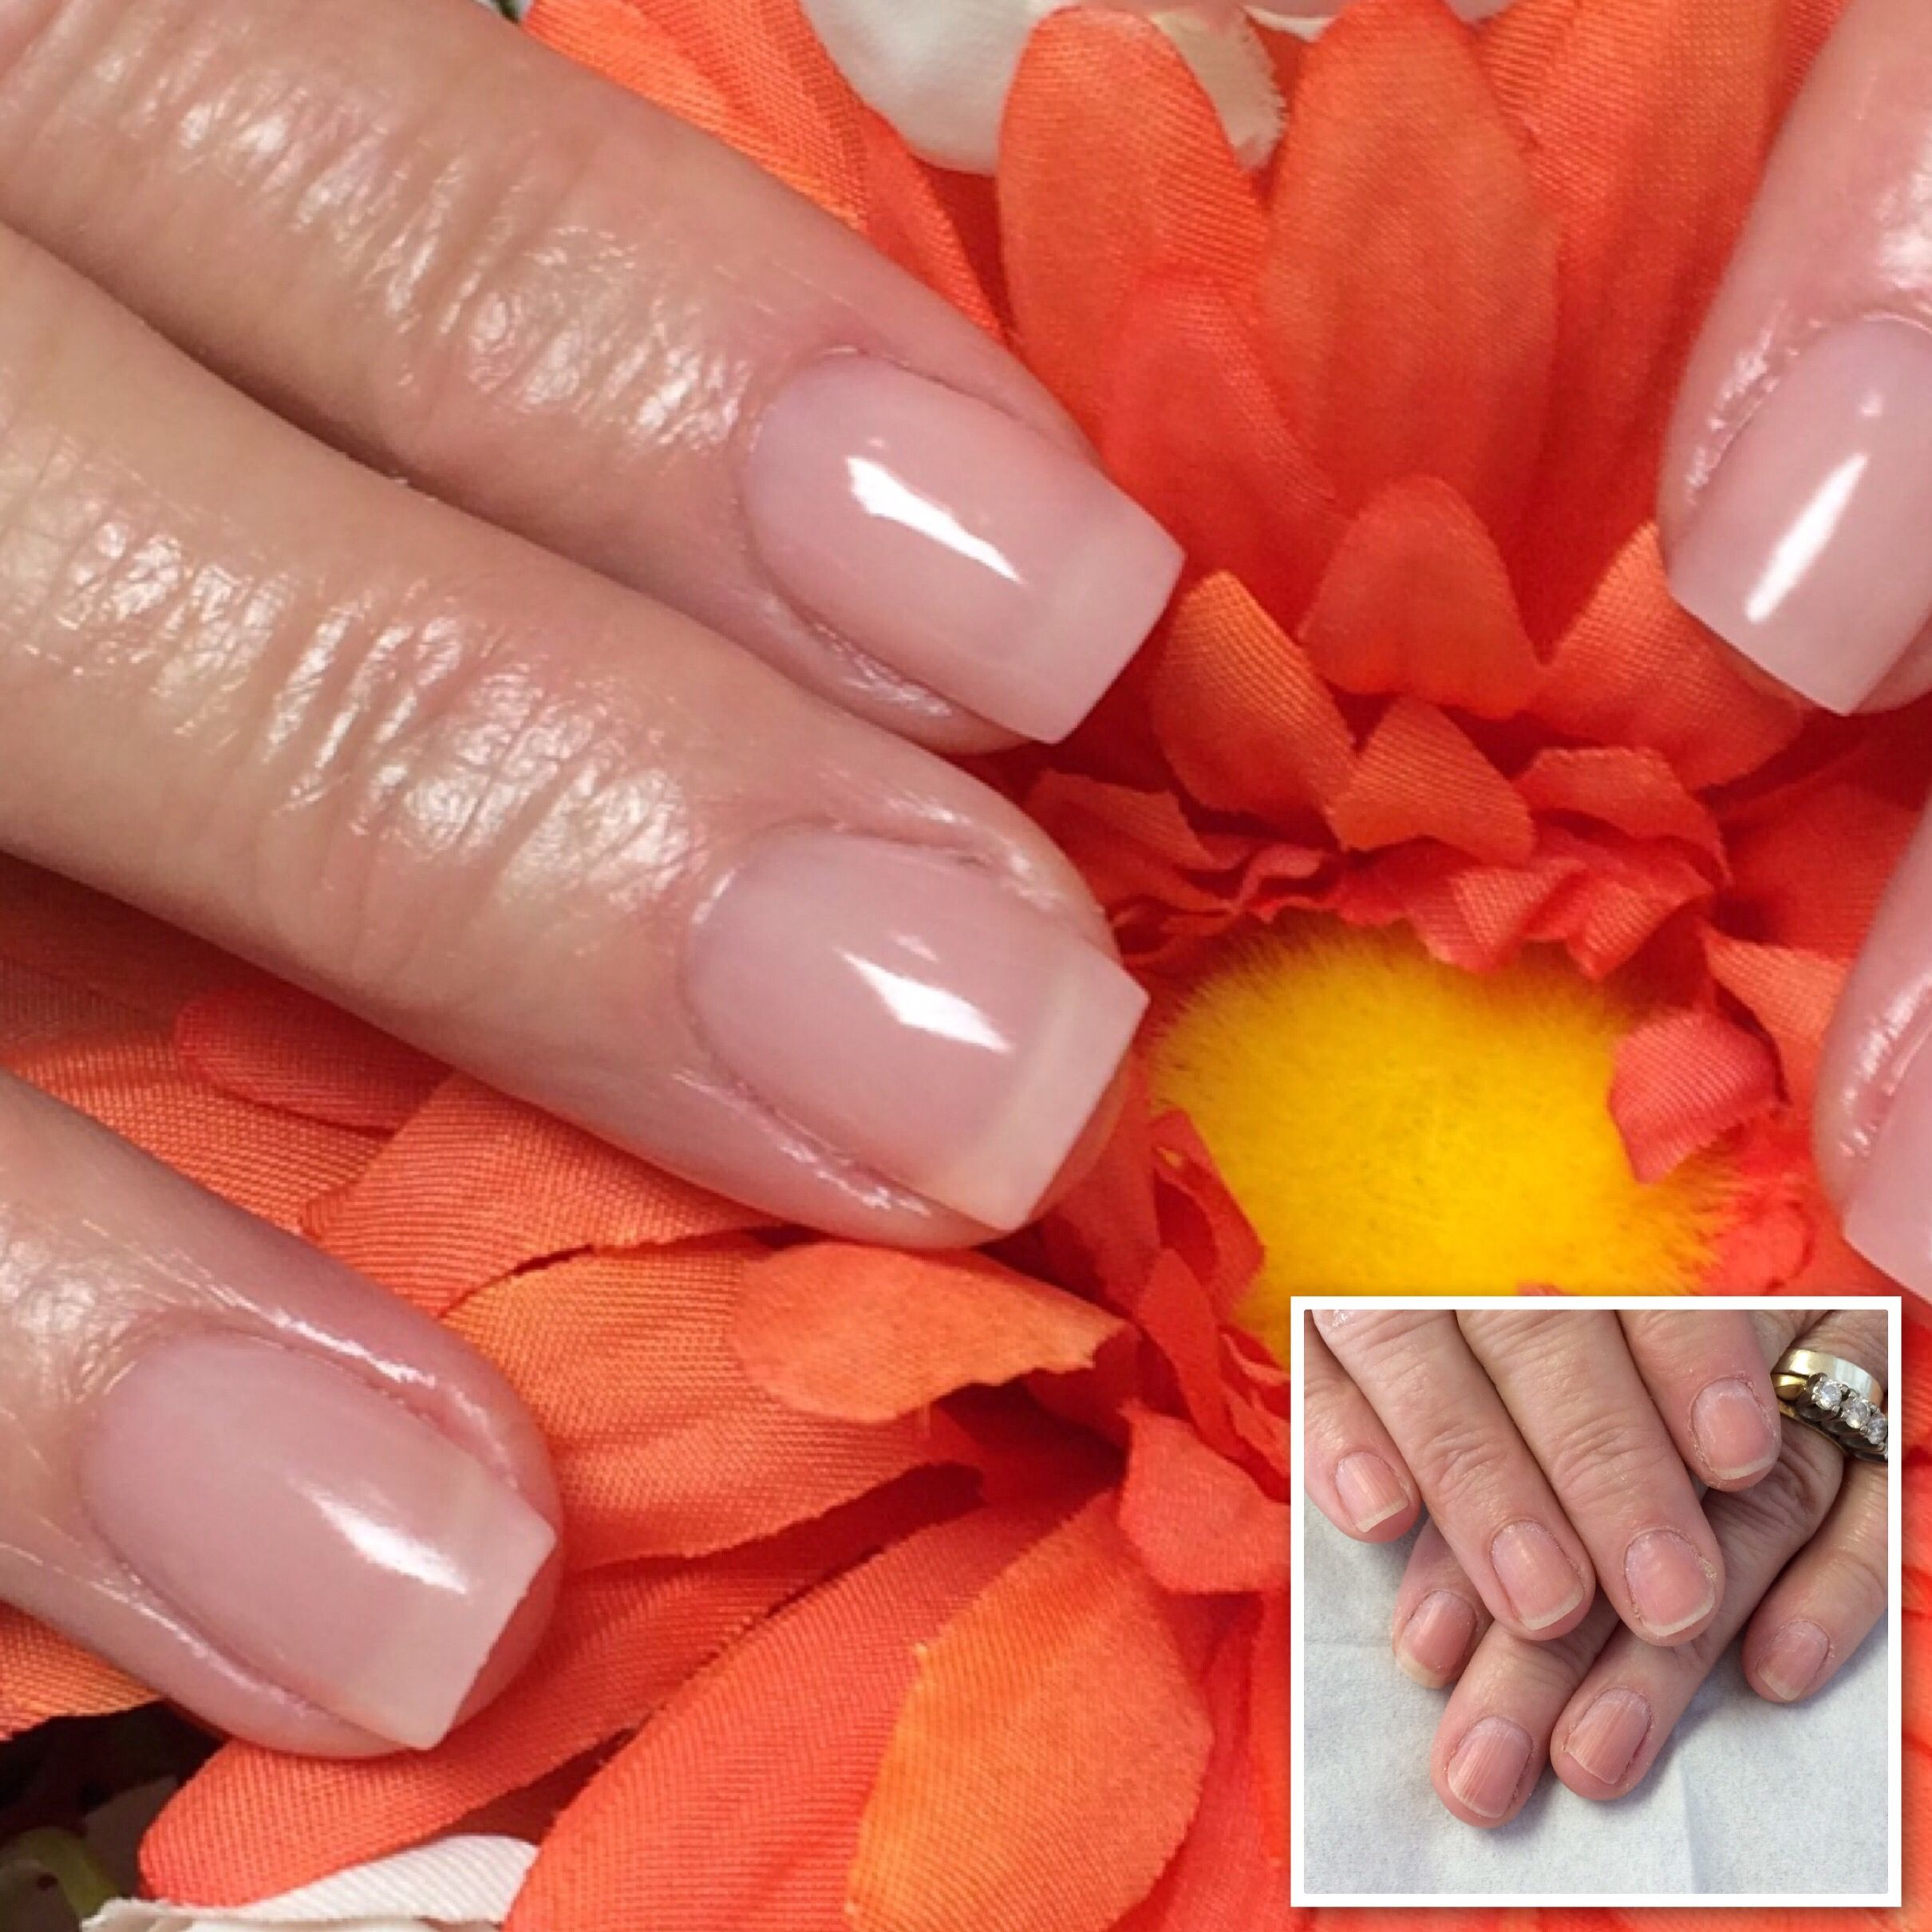 Gelish Polygel In Lightpink I Love How Natural These Look Simply Beautiful Coral Gel Nails Polygel Nails Nails